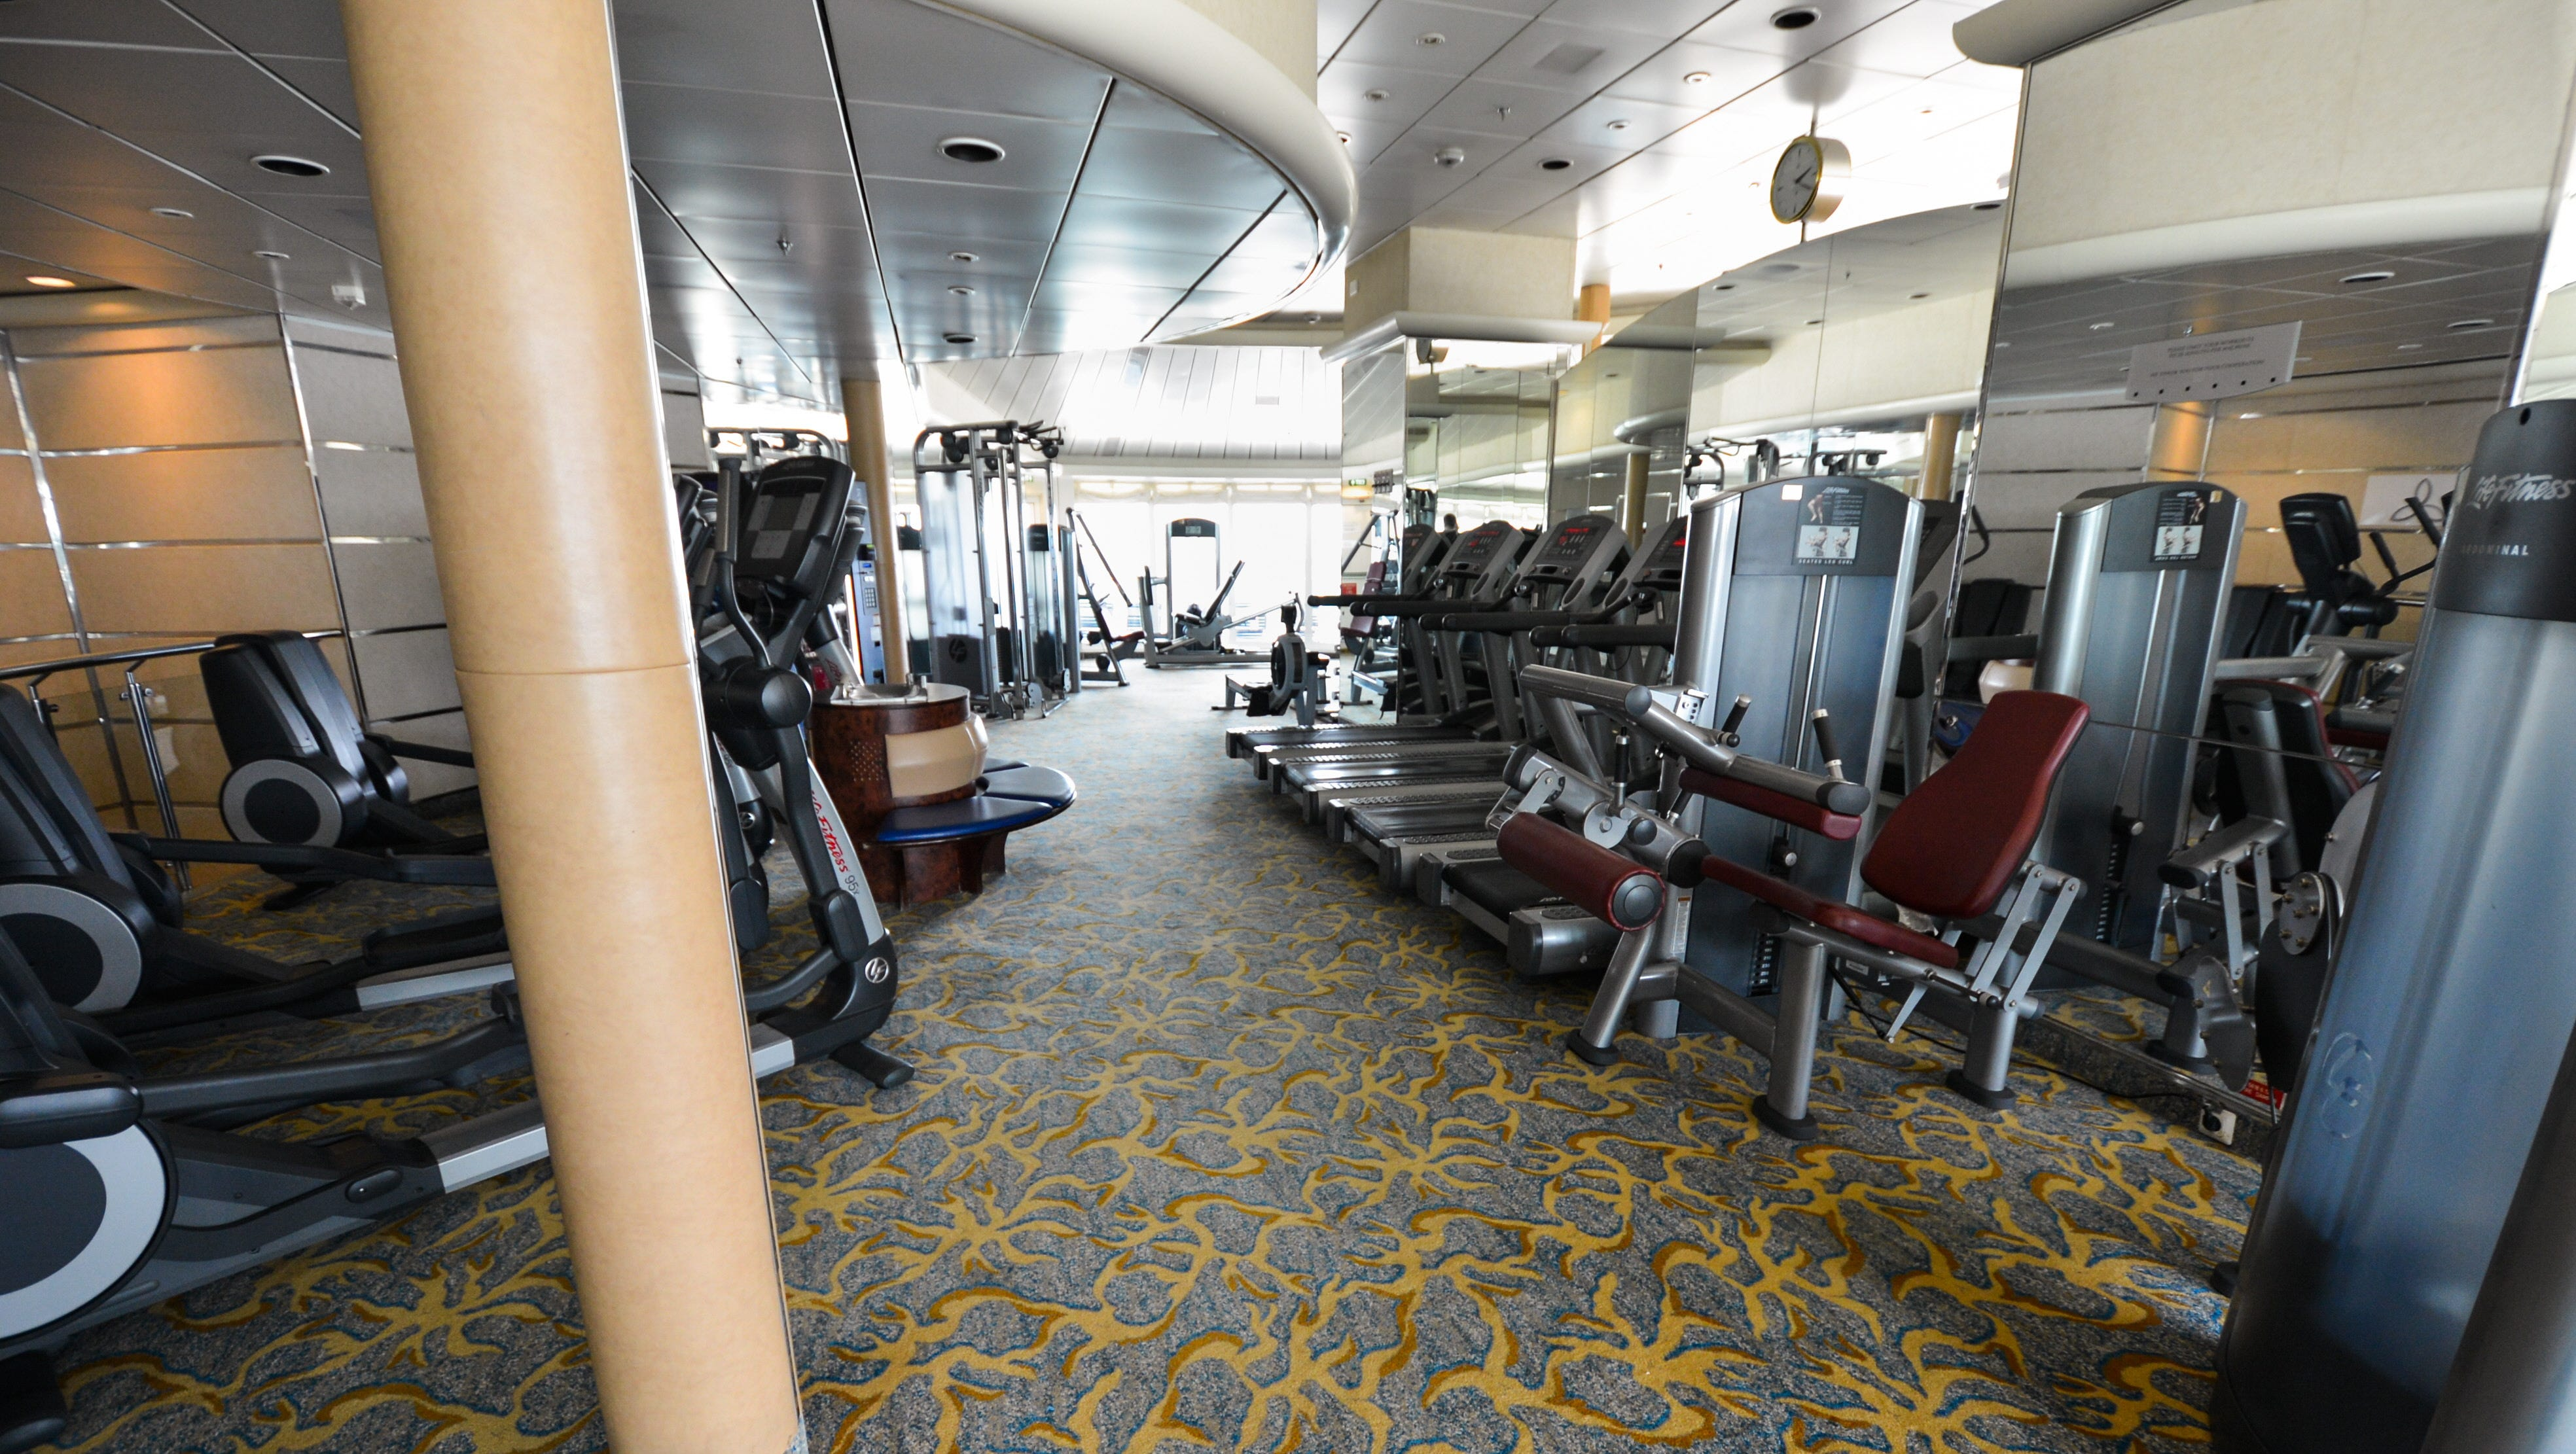 The fitness area of the Vitality Spa & Fitness Center features free weights, weight machines and a wide array of cardio equipment.